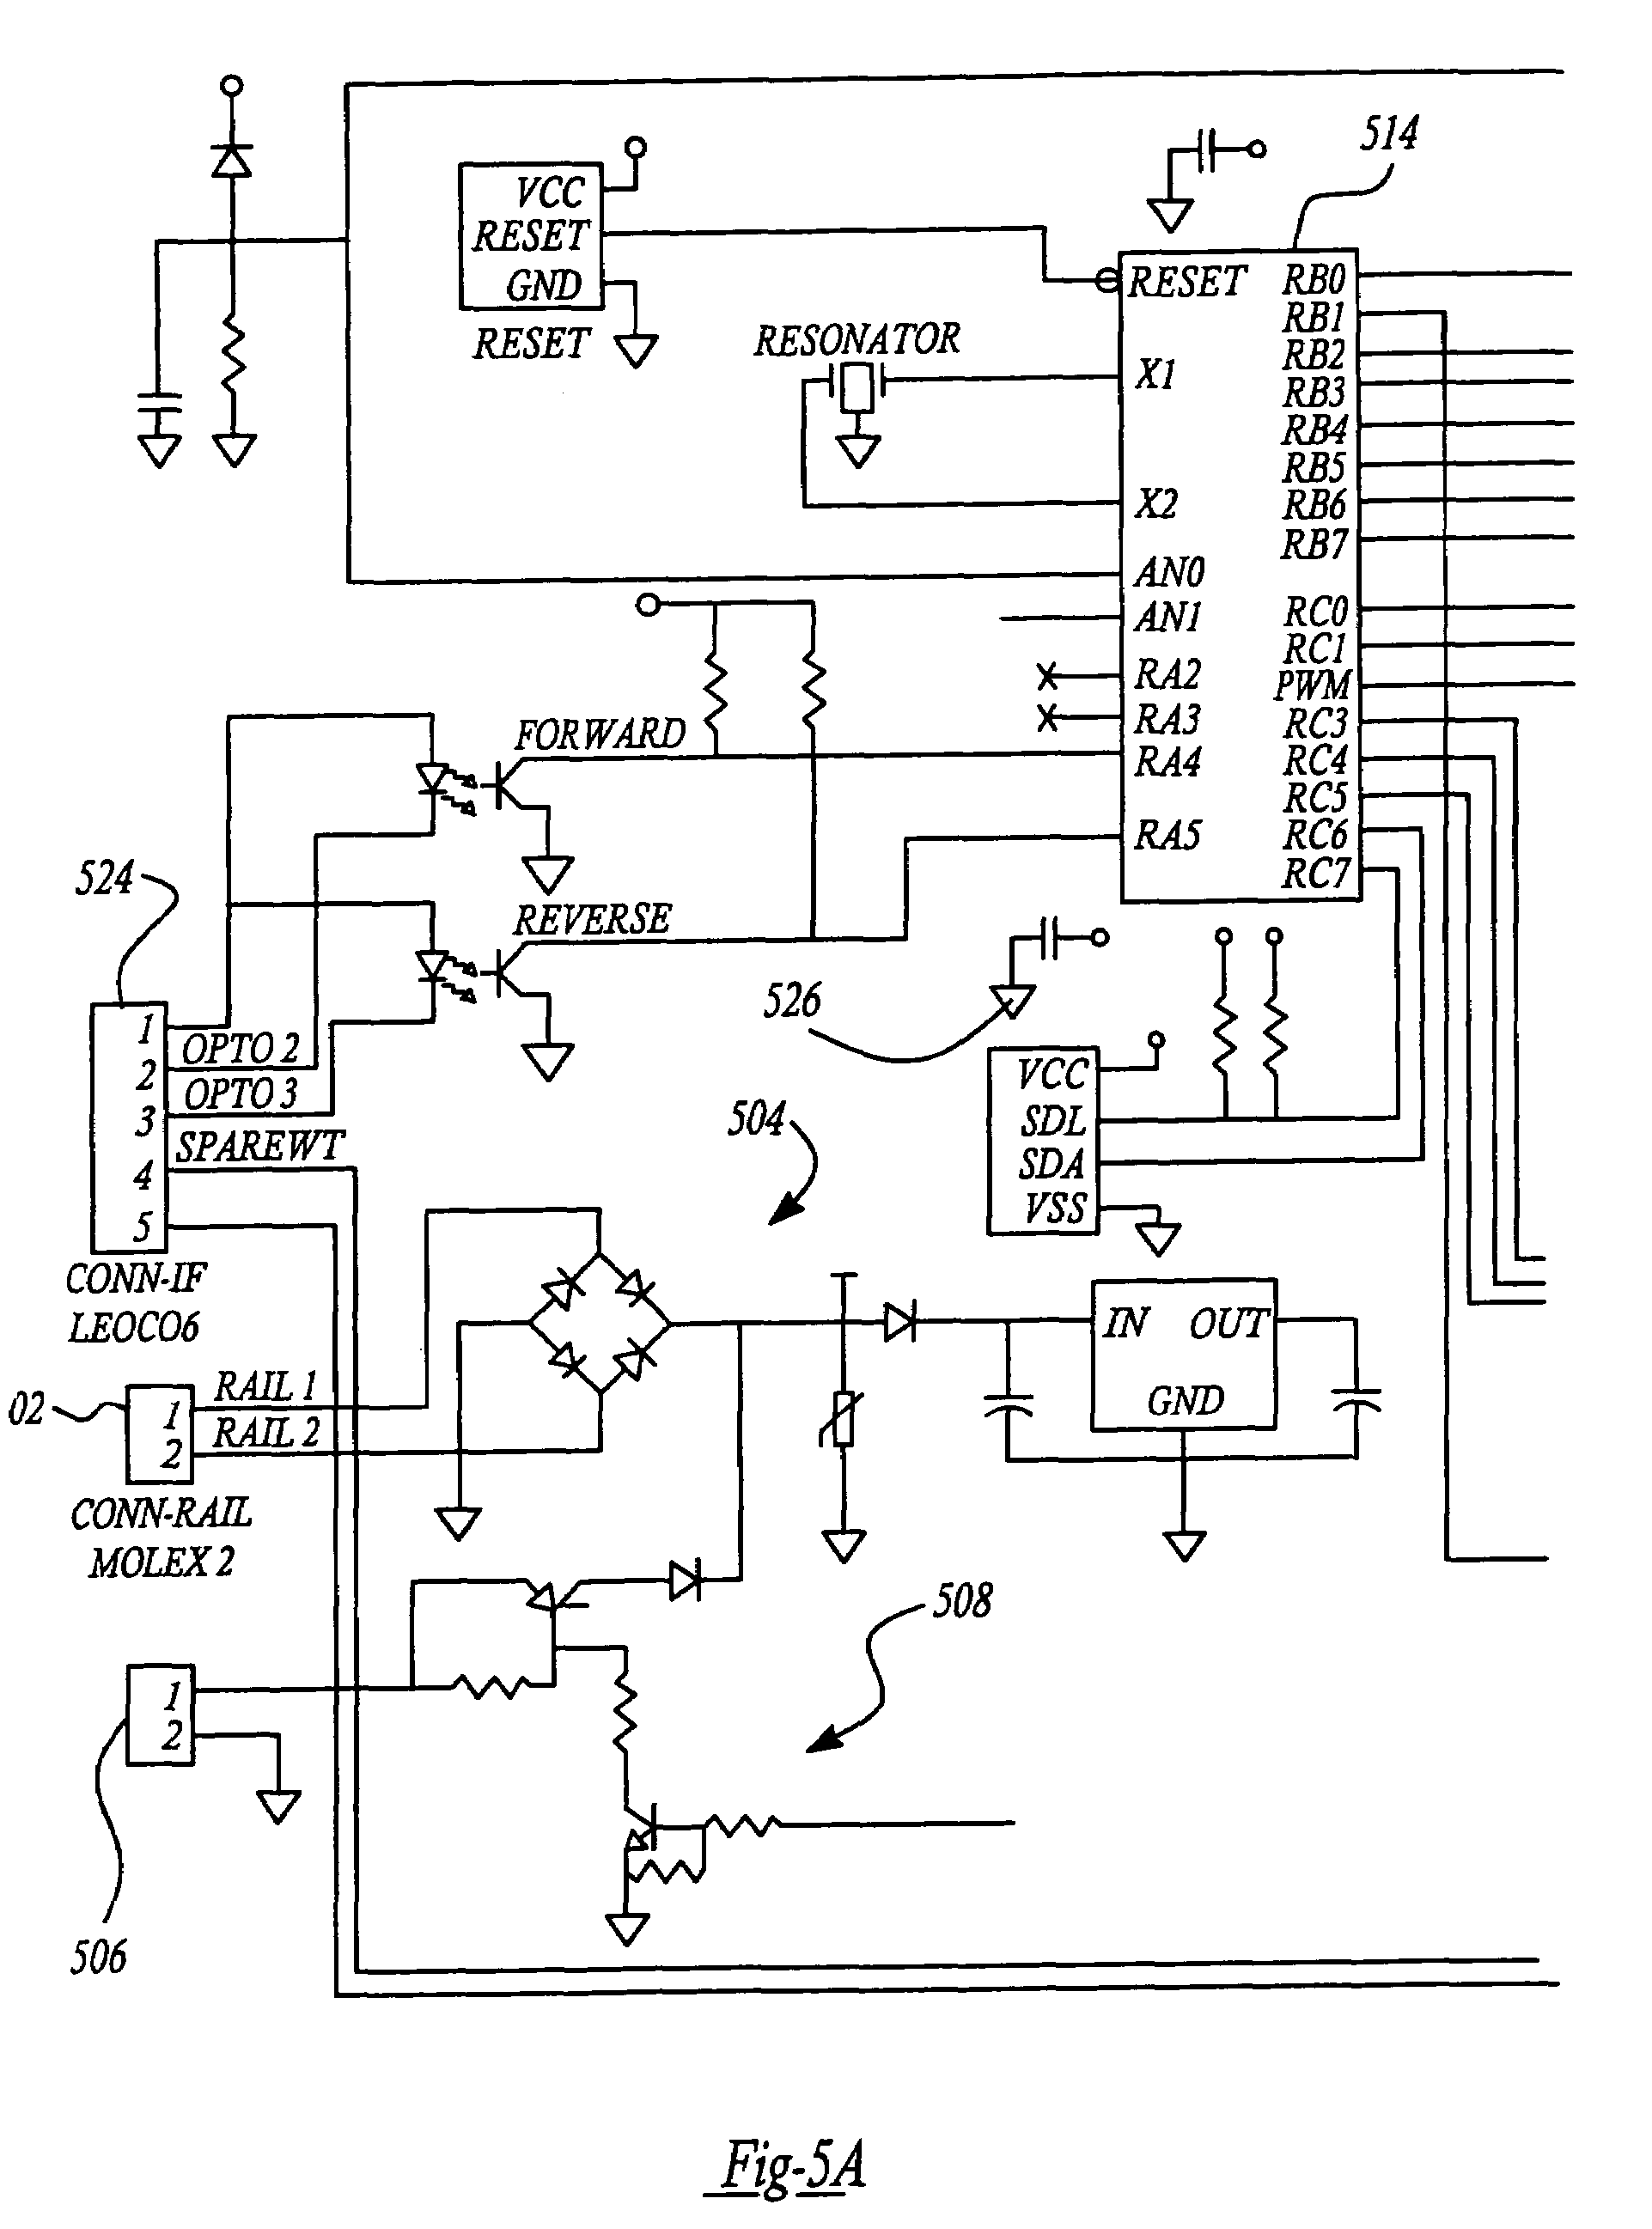 US07298103 20071120 D00003 patent us7298103 control and motor arrangement for use in model  at aneh.co